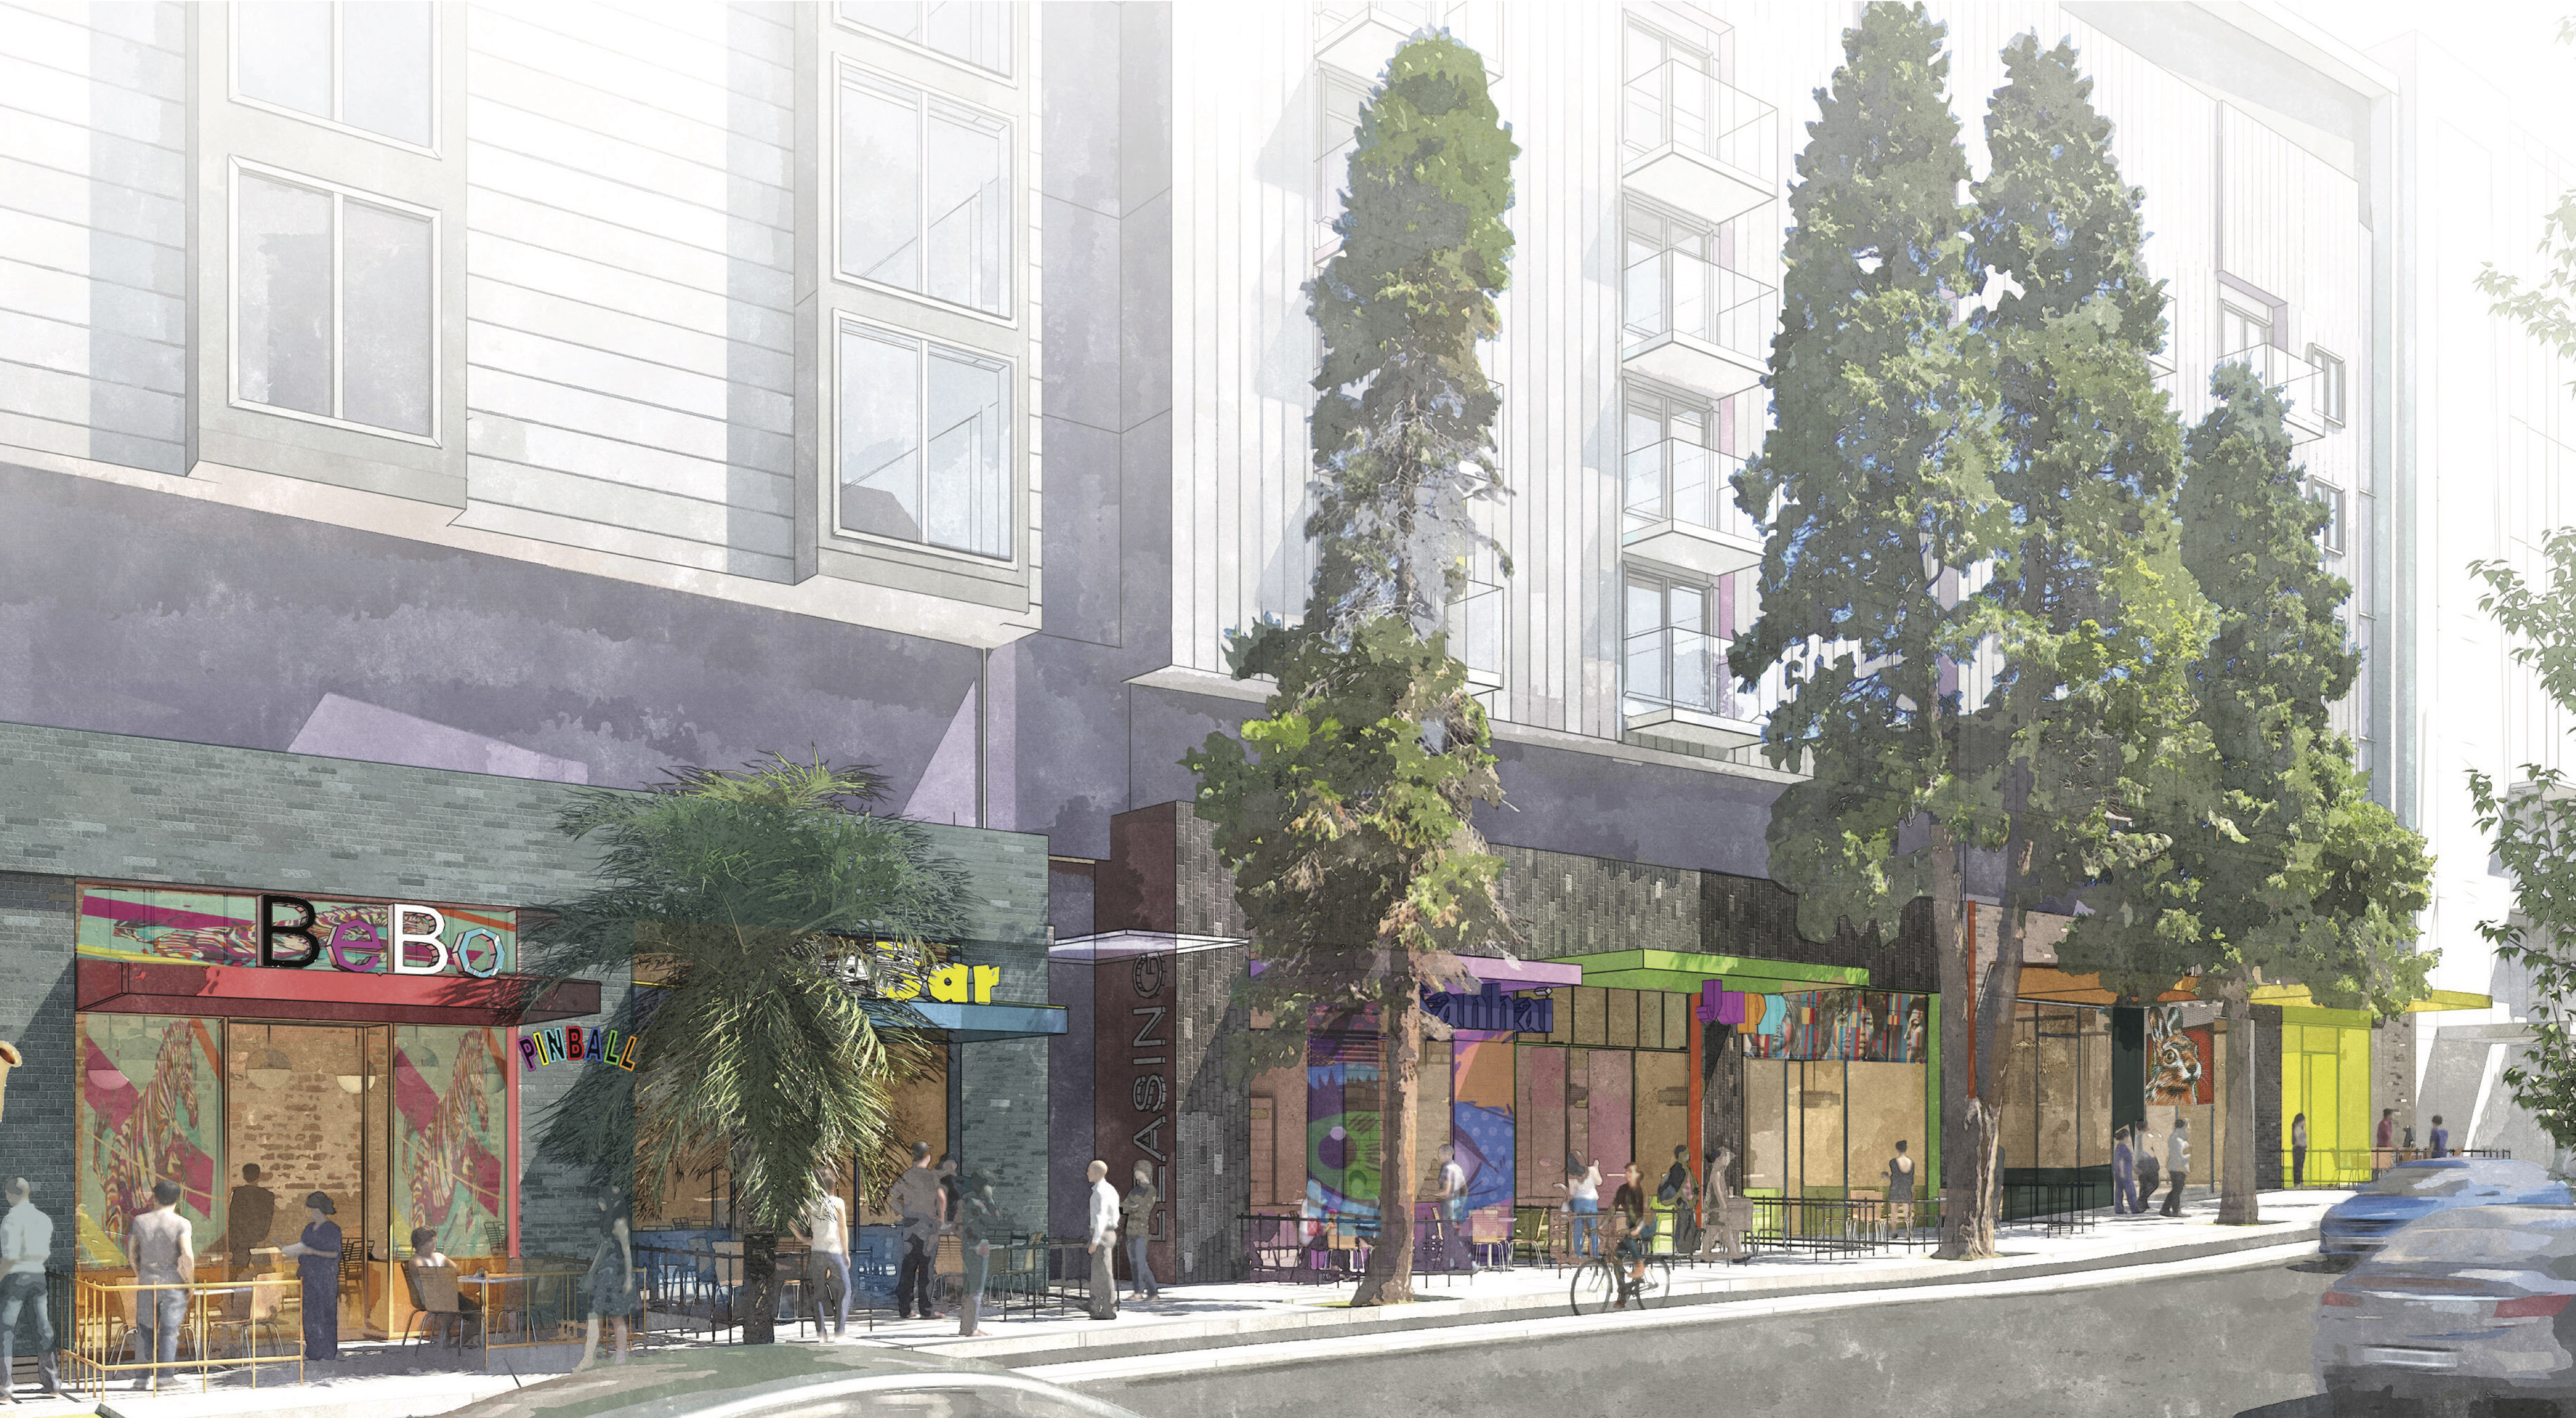 Downtown Seattle Design Review Roundup - July 2019